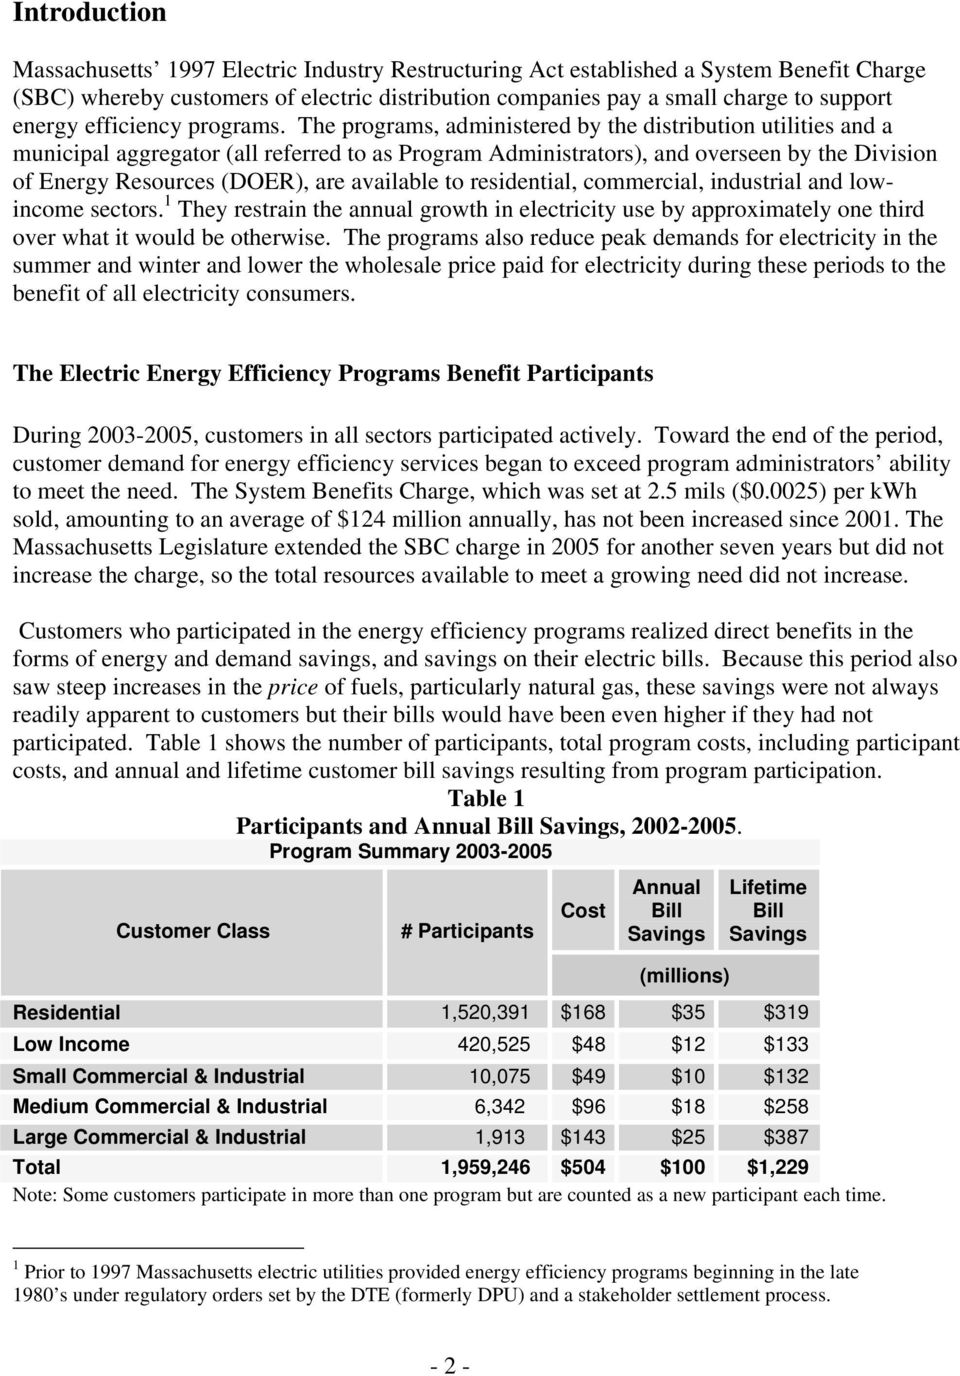 The programs, administered by the distribution utilities and a municipal aggregator (all referred to as Program Administrators), and overseen by the Division of Energy Resources (DOER), are available